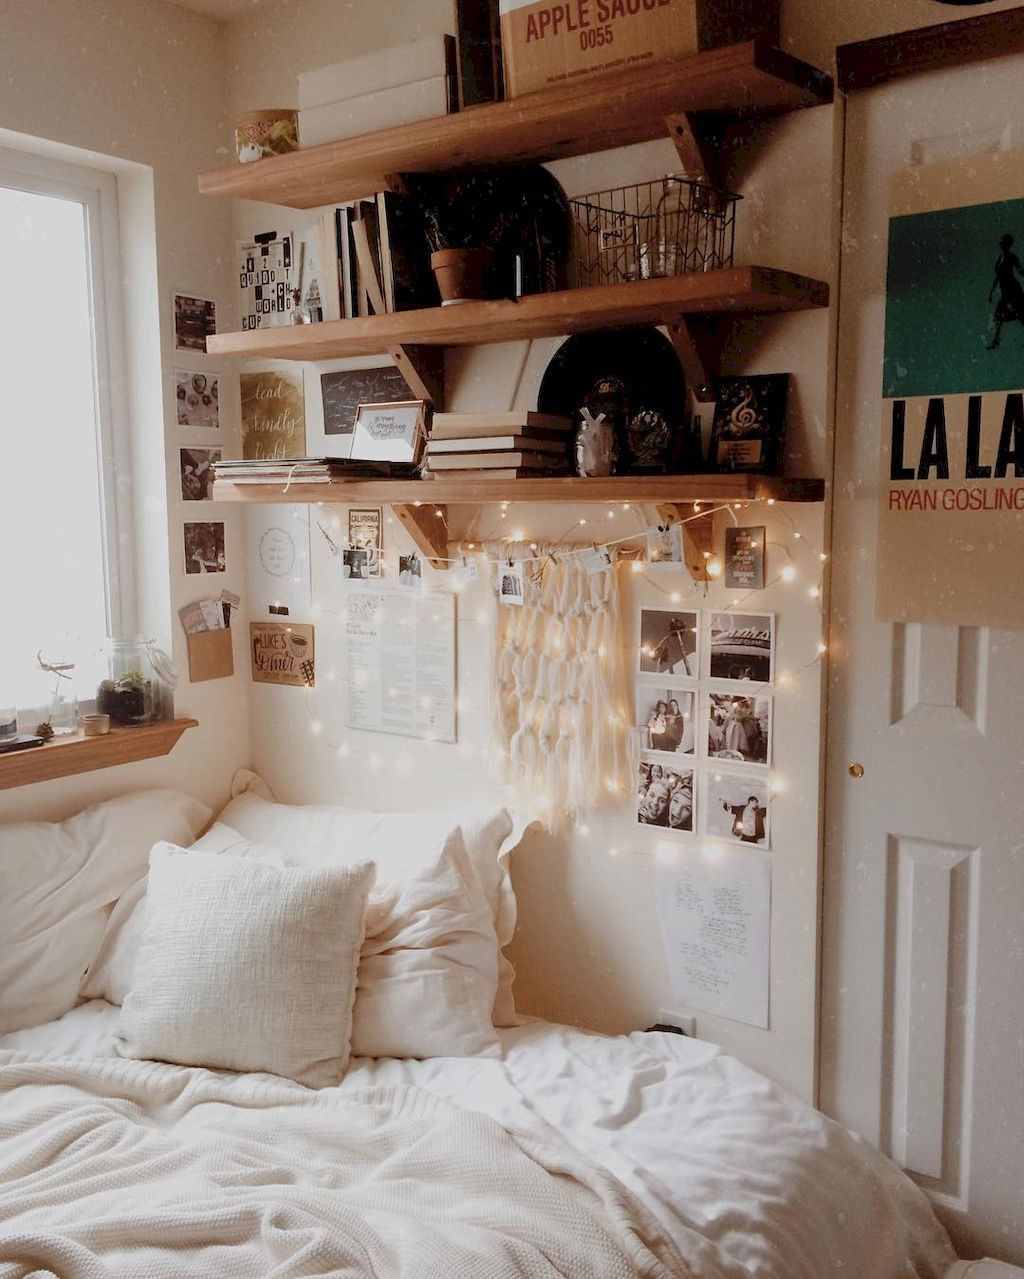 Cute diy dorm room decorating ideas on a budget thrifty